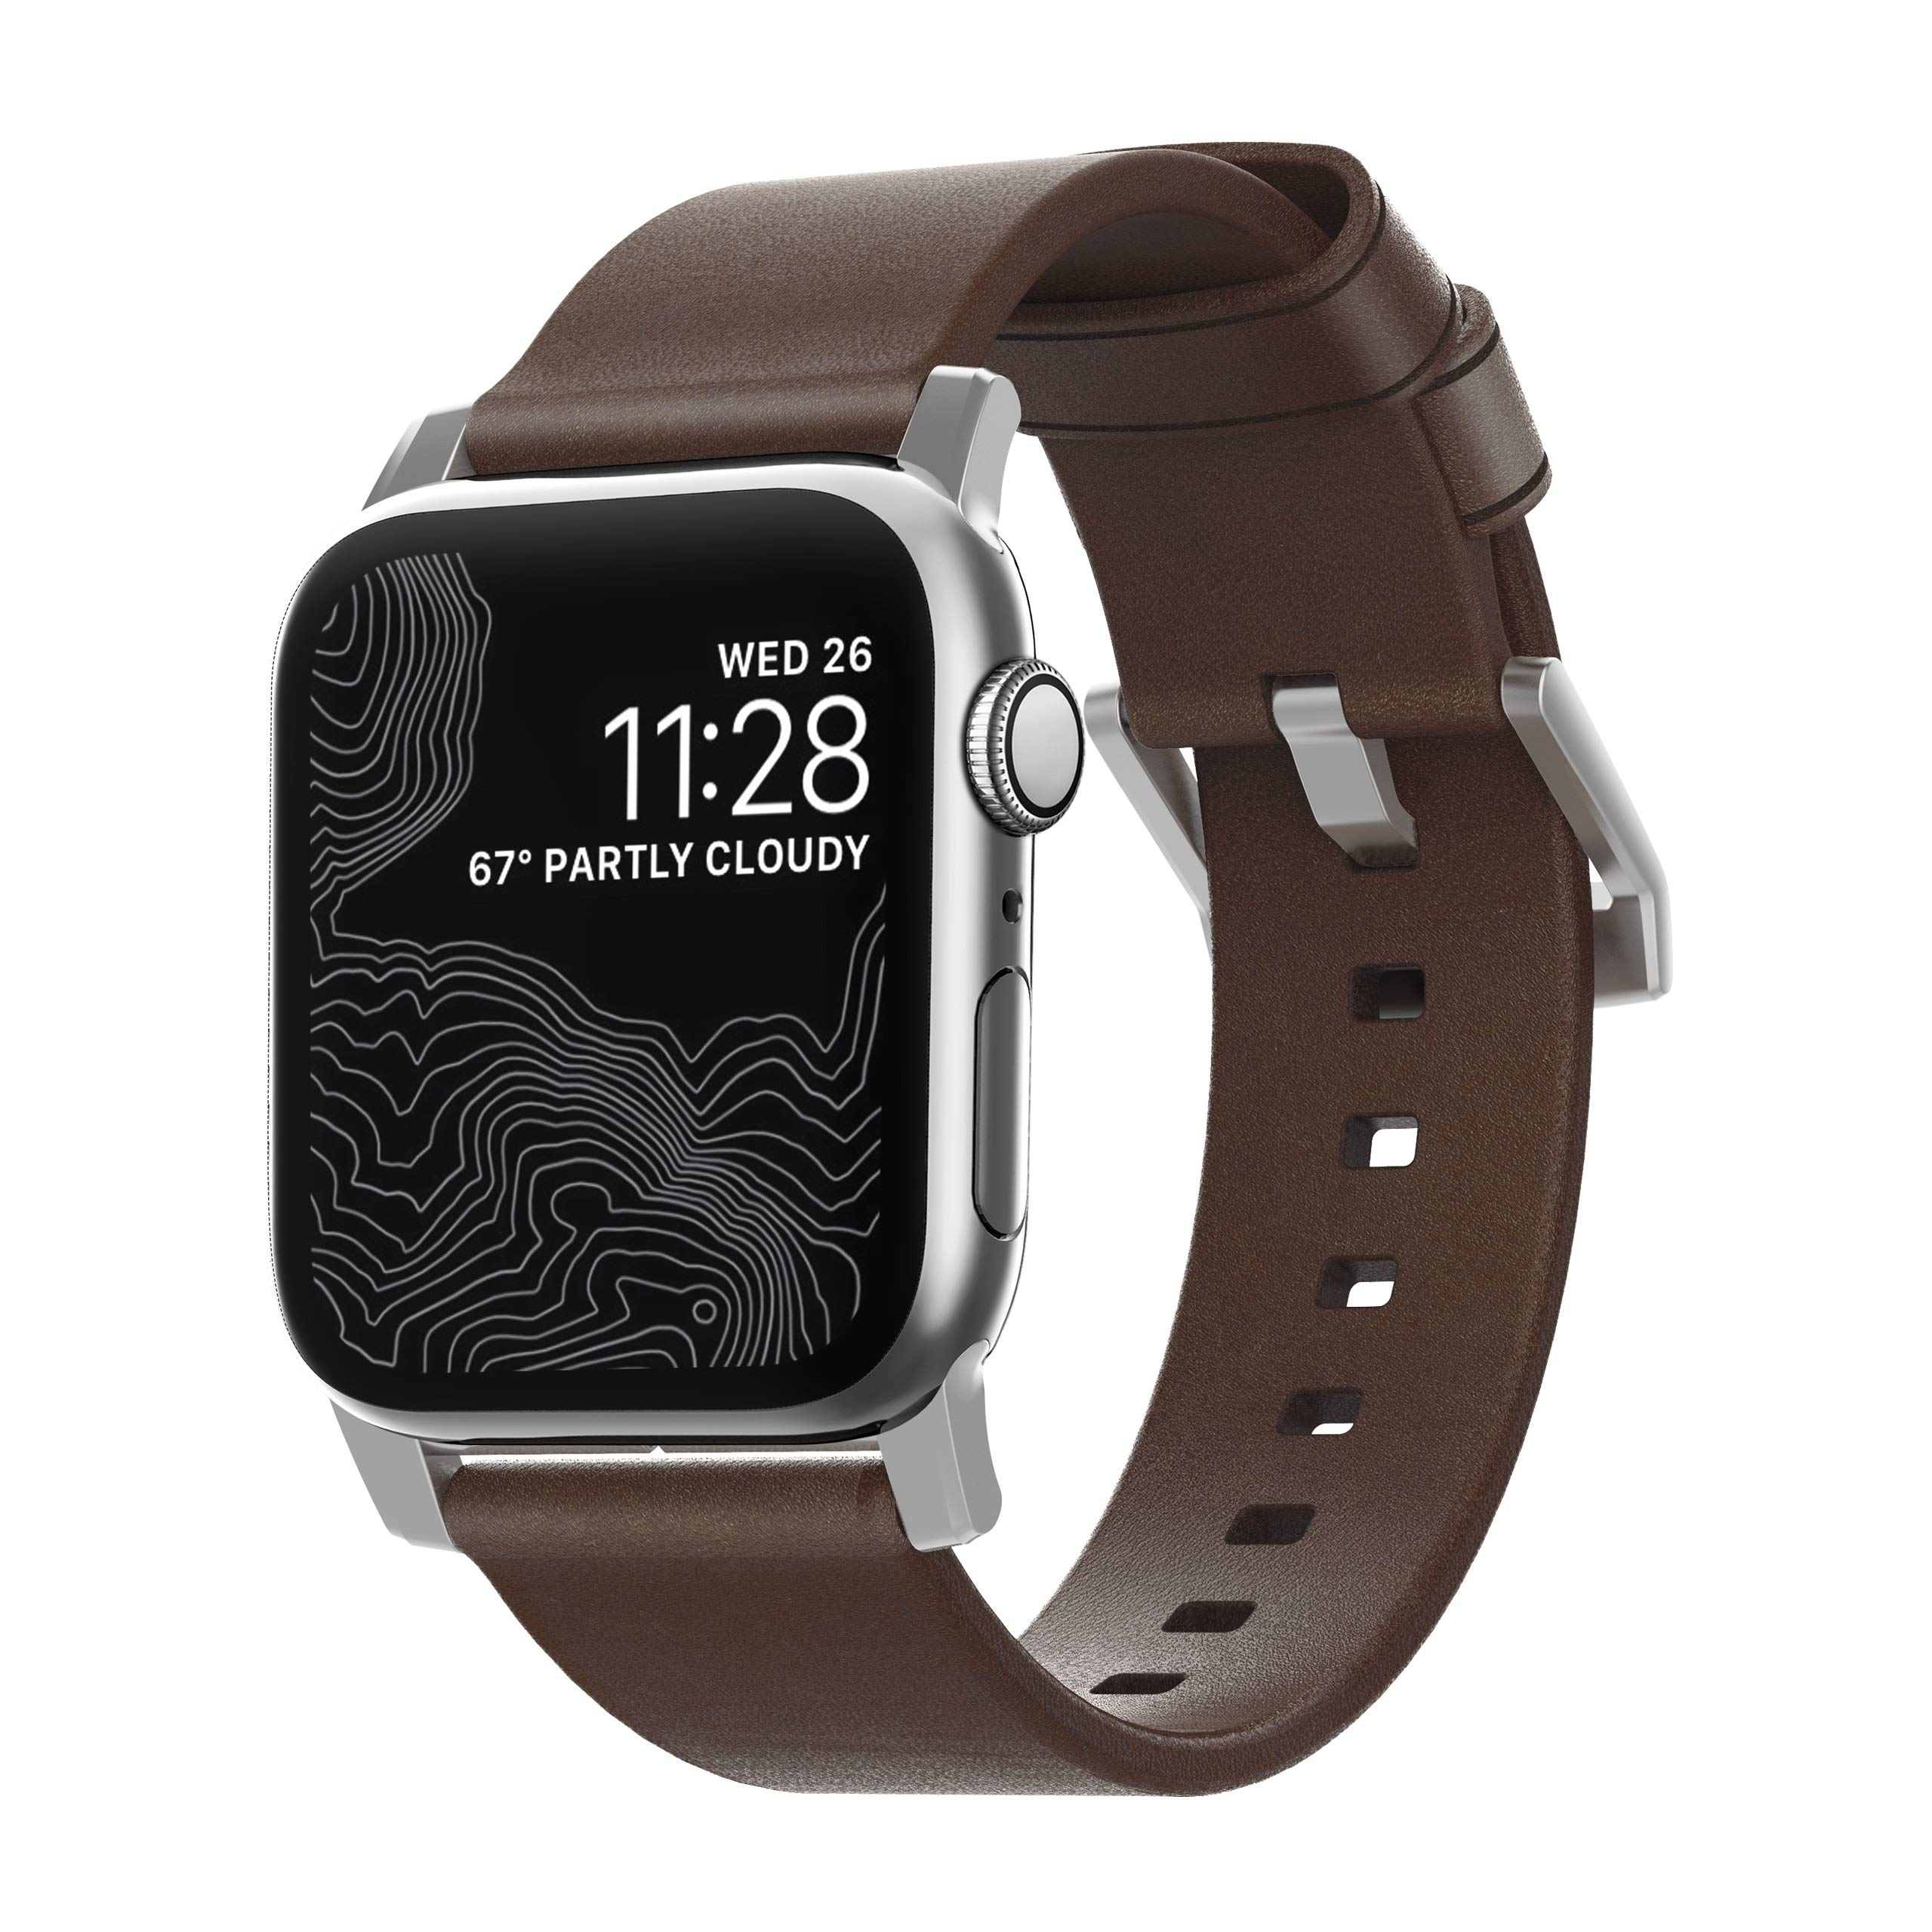 Nomad Modern Strap for Apple Watch 44mm/42mm | Rustic Brown Horween Leather | Silver Hardware by Nomad